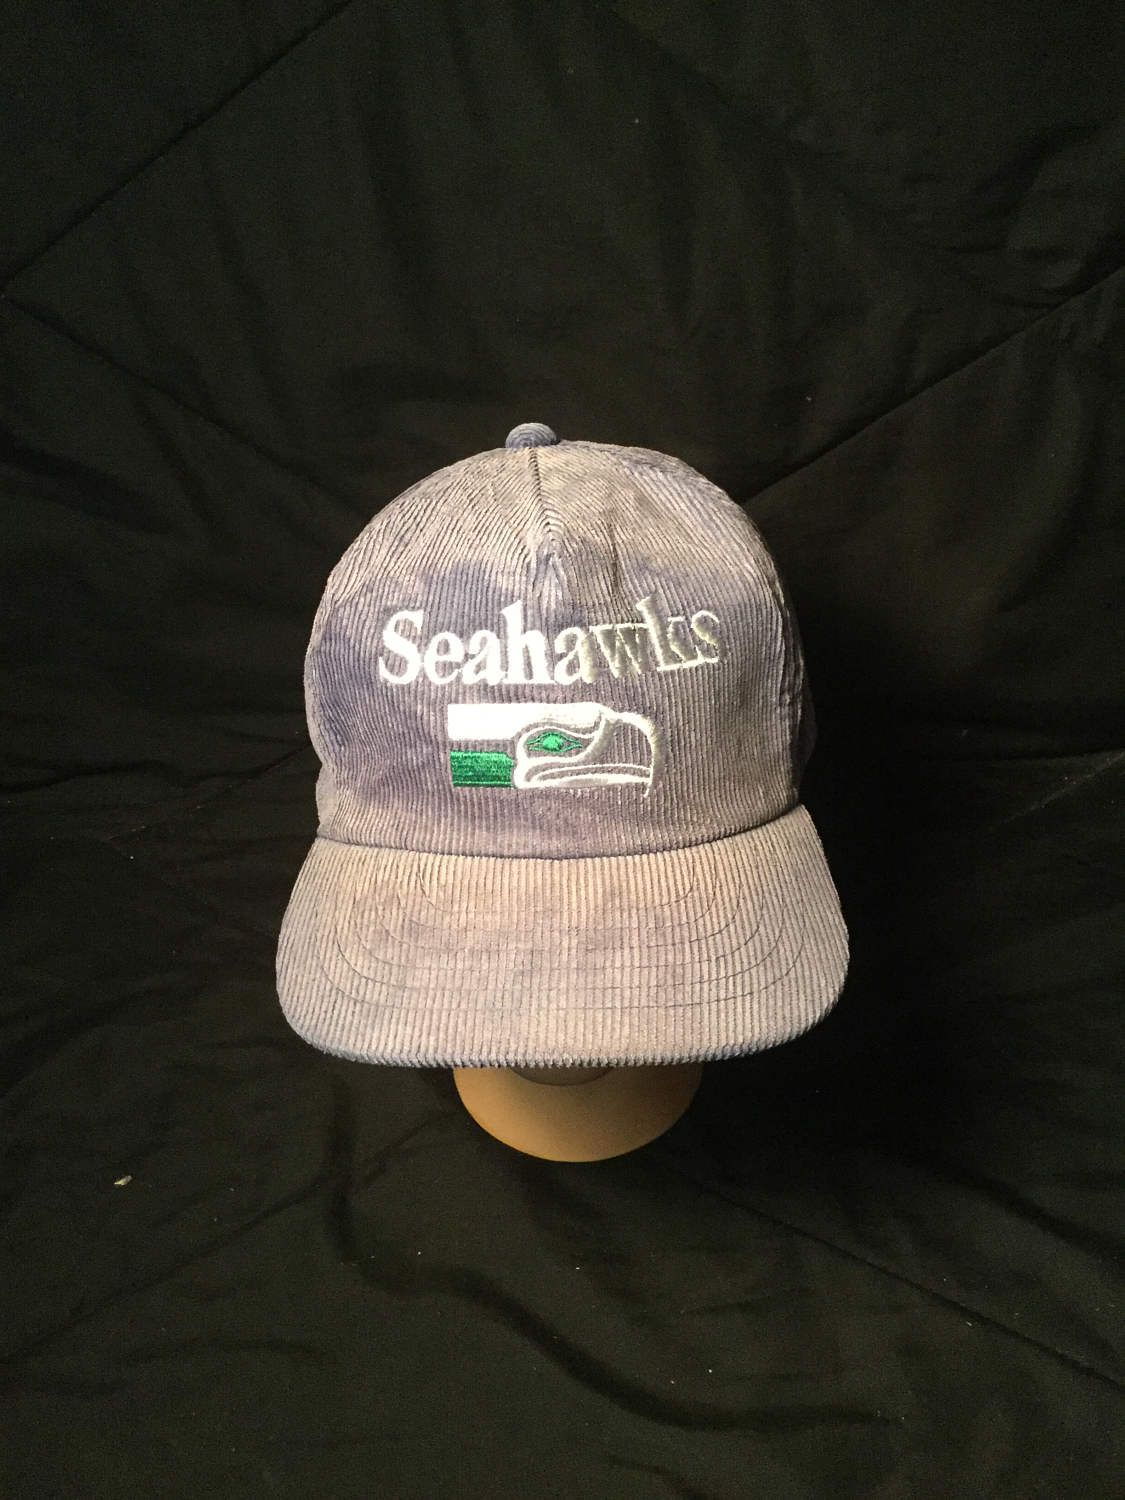 Incredible Vintage 1980 S Seattle Seahawks Corduroy Snap Back Trucker Hat By 413productions On Etsy Seattle Hats Hats The Incredibles